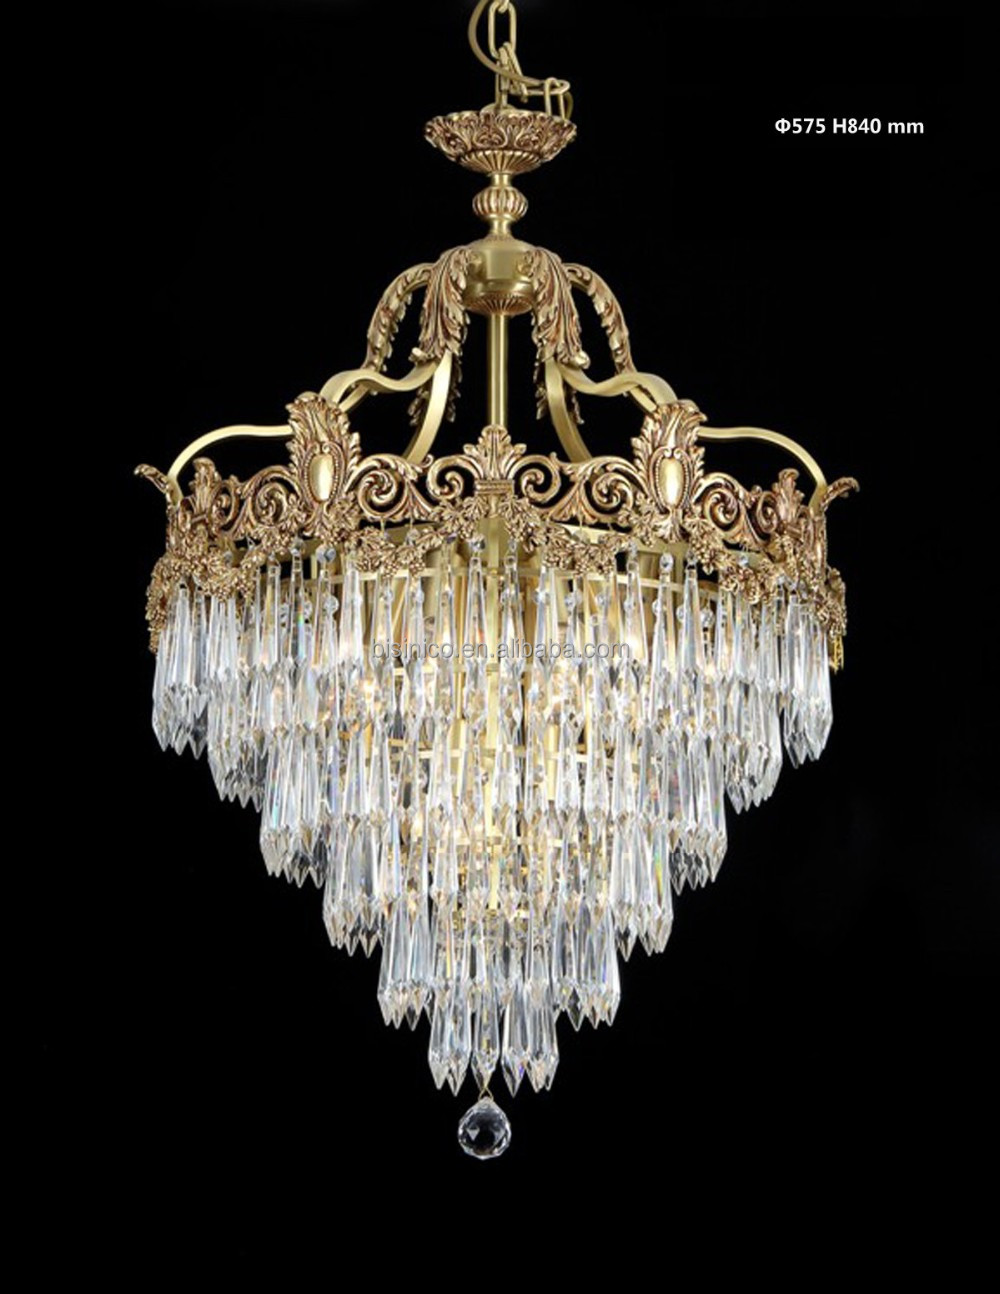 Rococo Style Crystal Bronze Chandelier For Living Room/ Elegant Crystal Chandelier Decorated Pendant Light